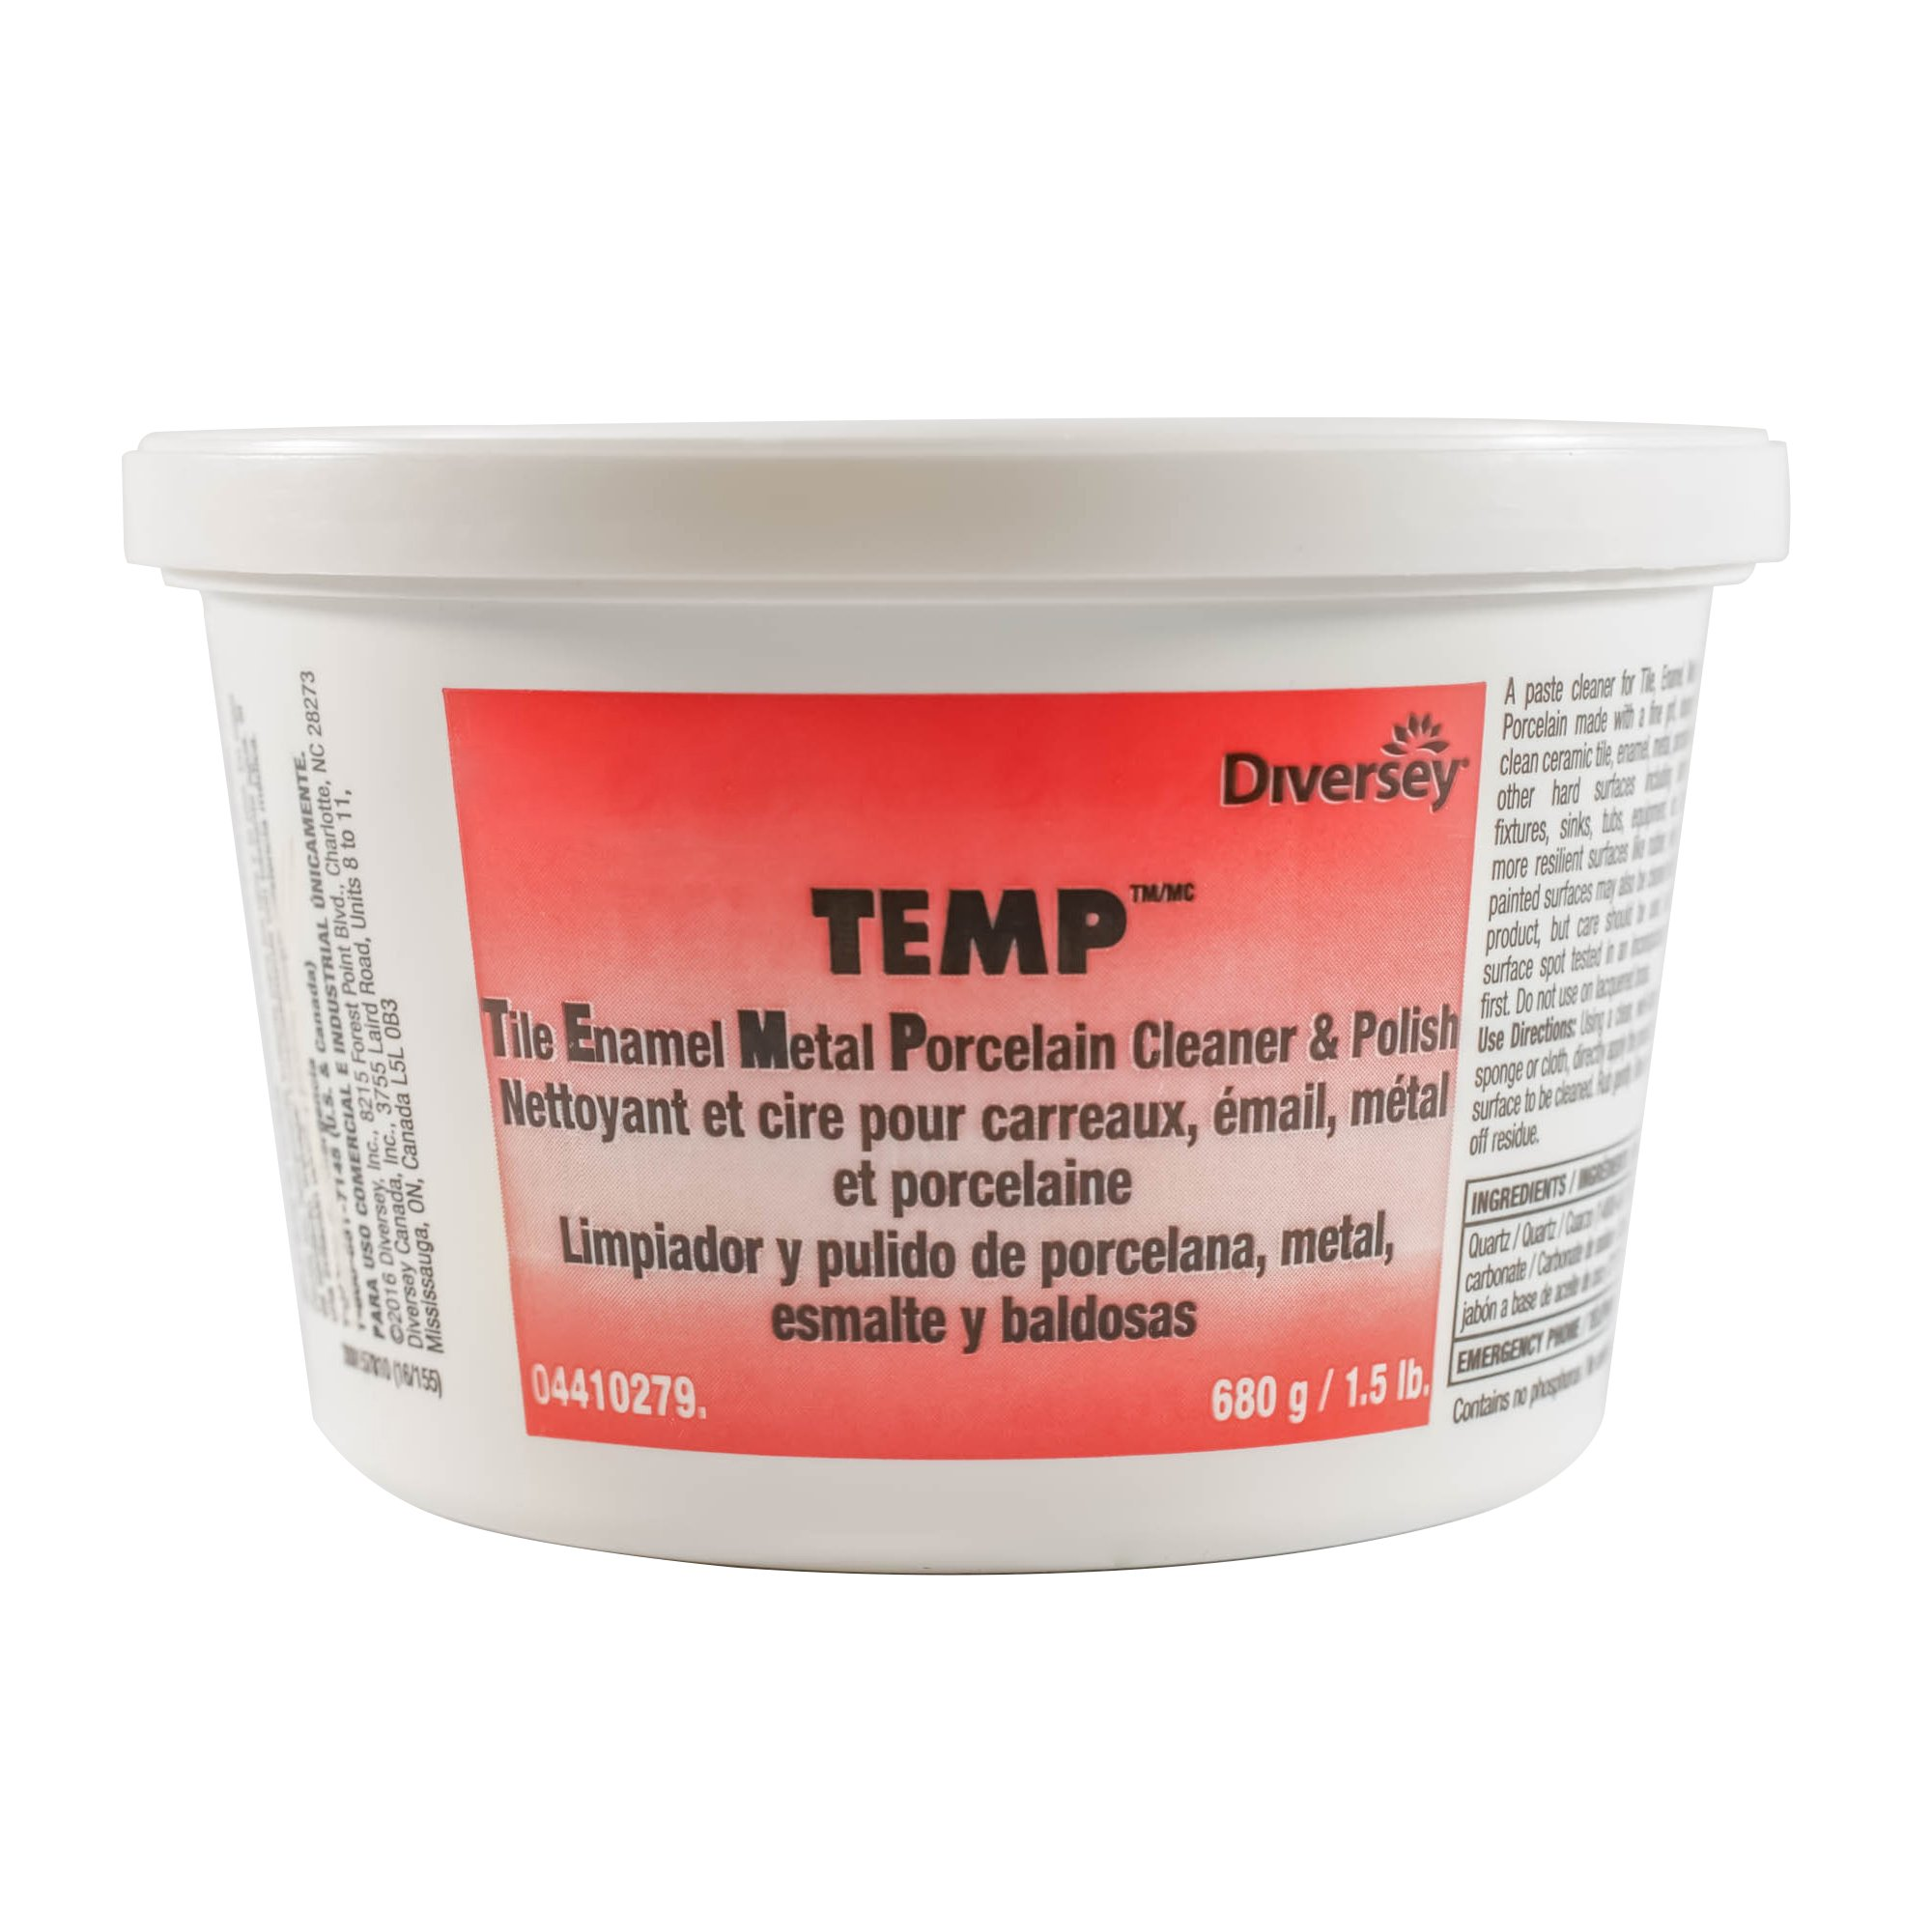 Diversey TEMP Professional Paste Cleaner and Polish (1.5-Pound Tub, 12-Pack) by Diversey